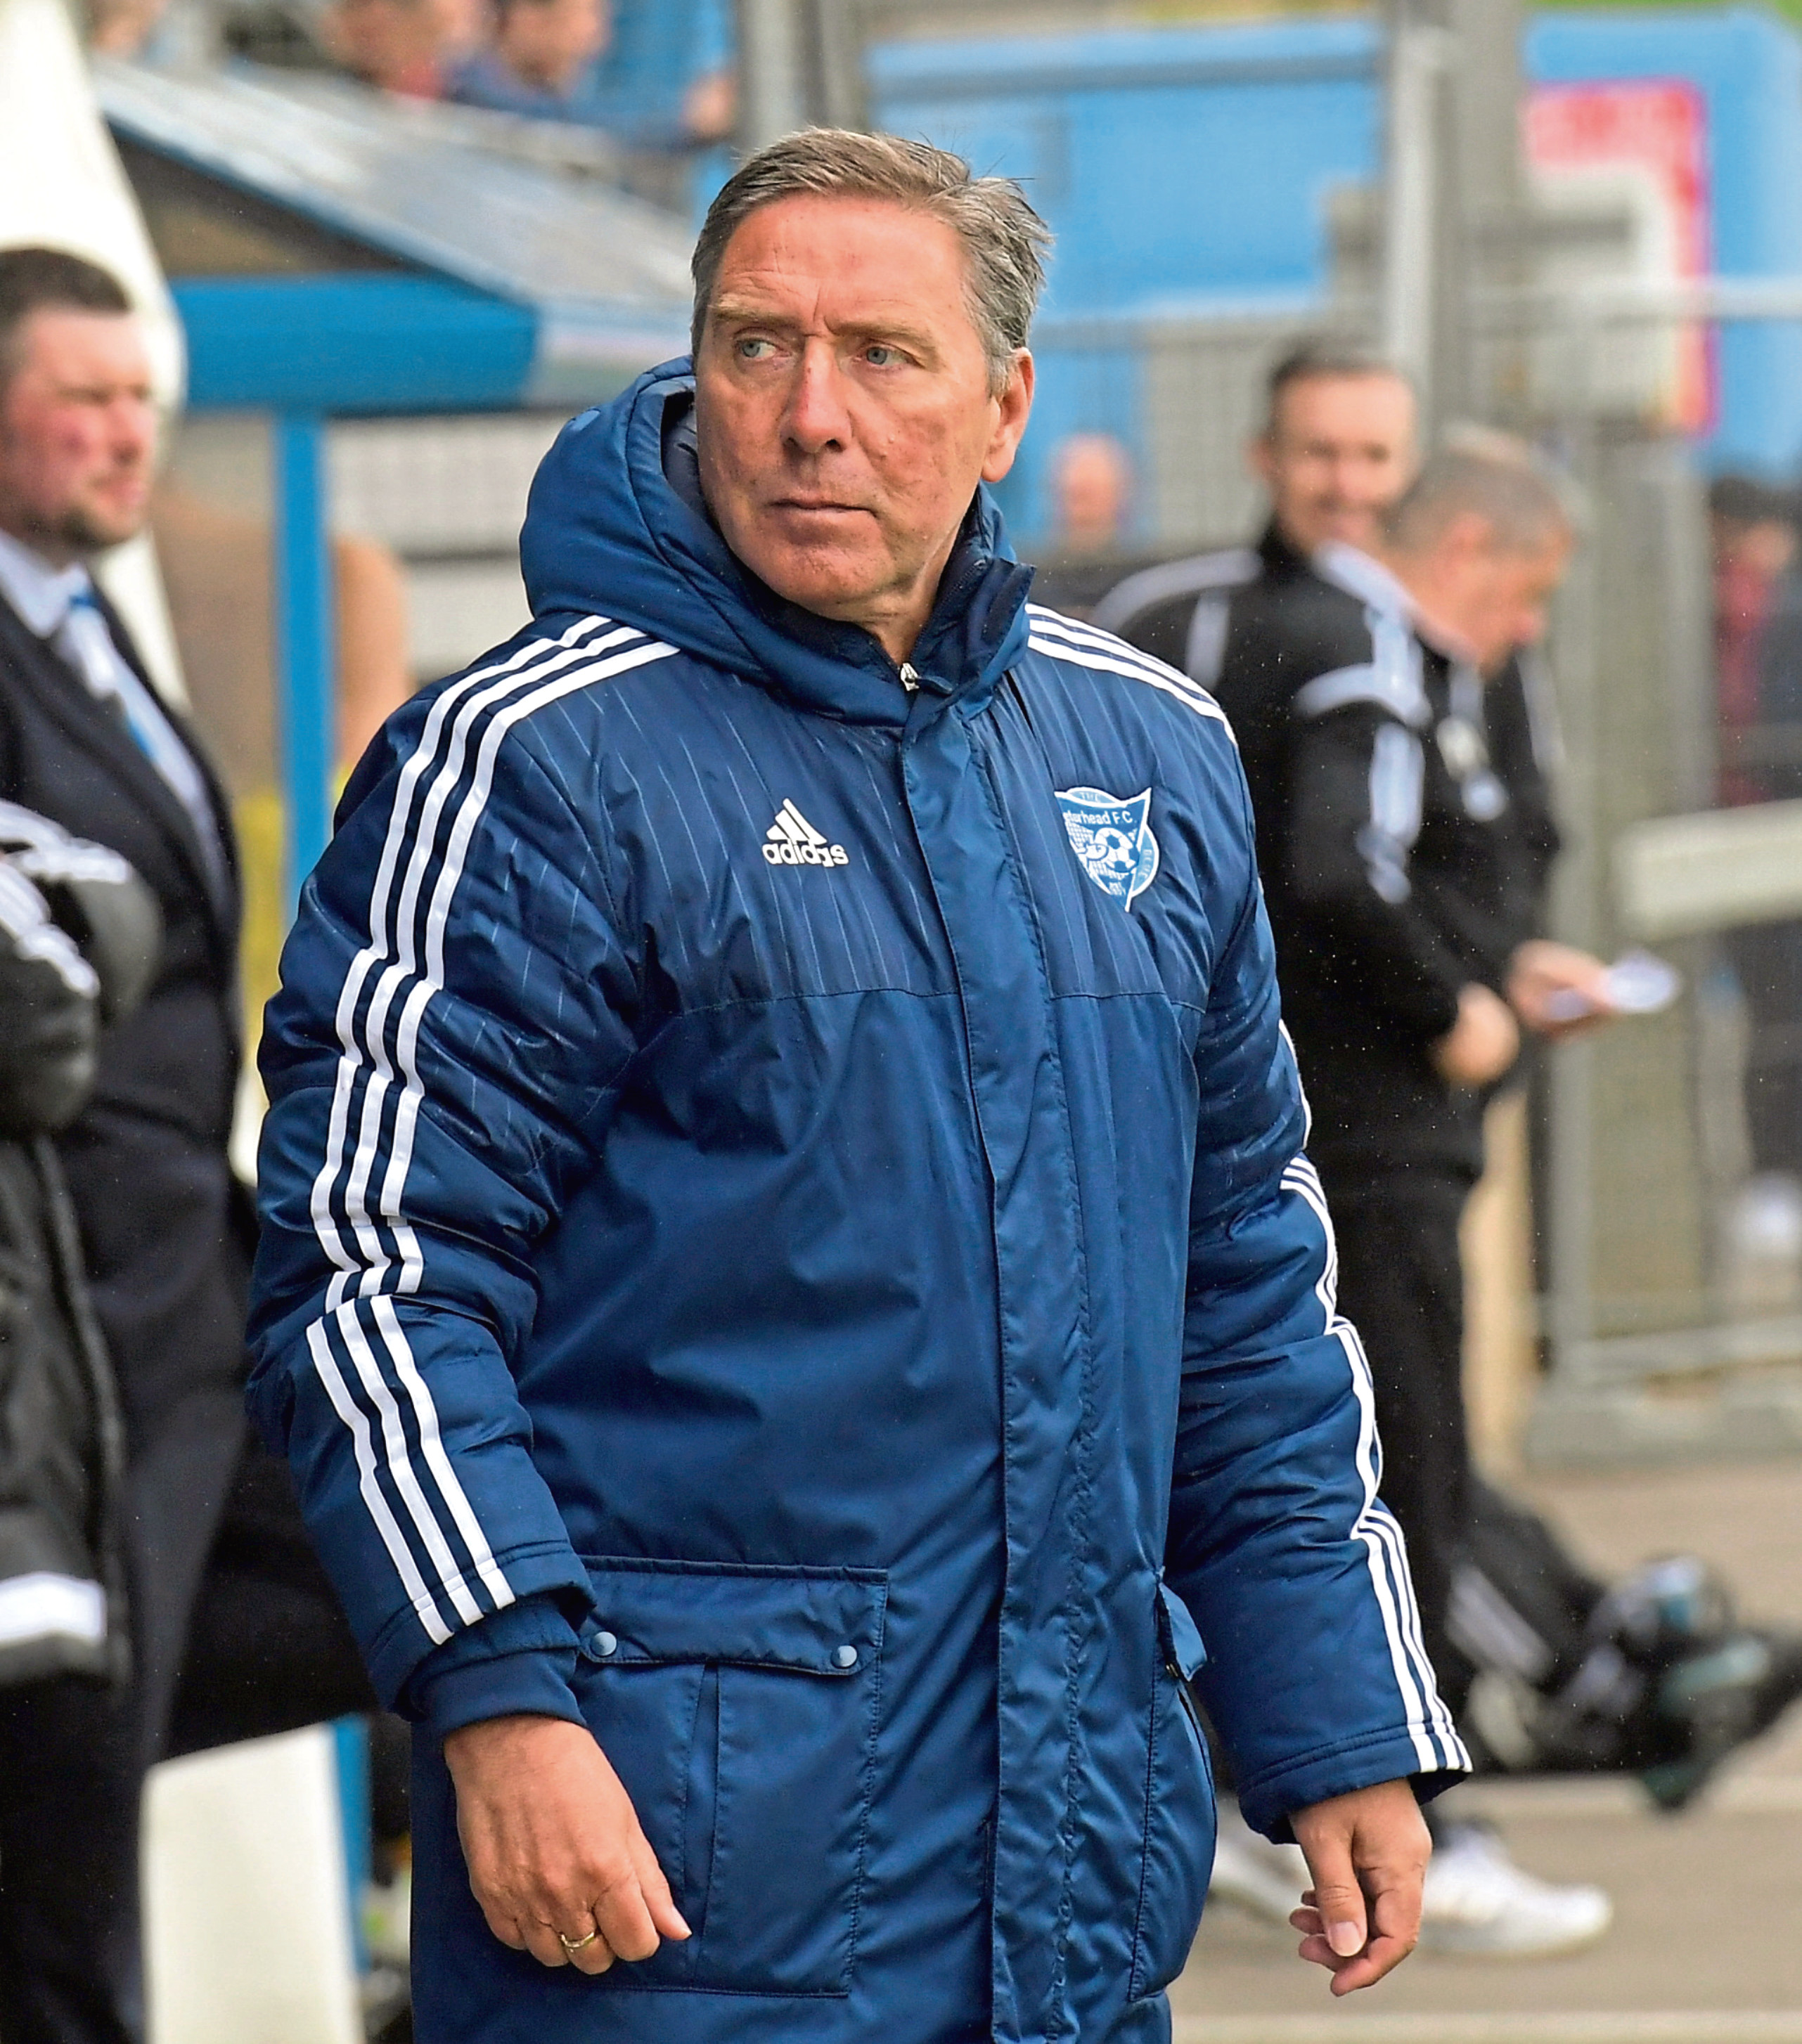 Peterhead manager Jim McInally Picture by KATH FLANNERY